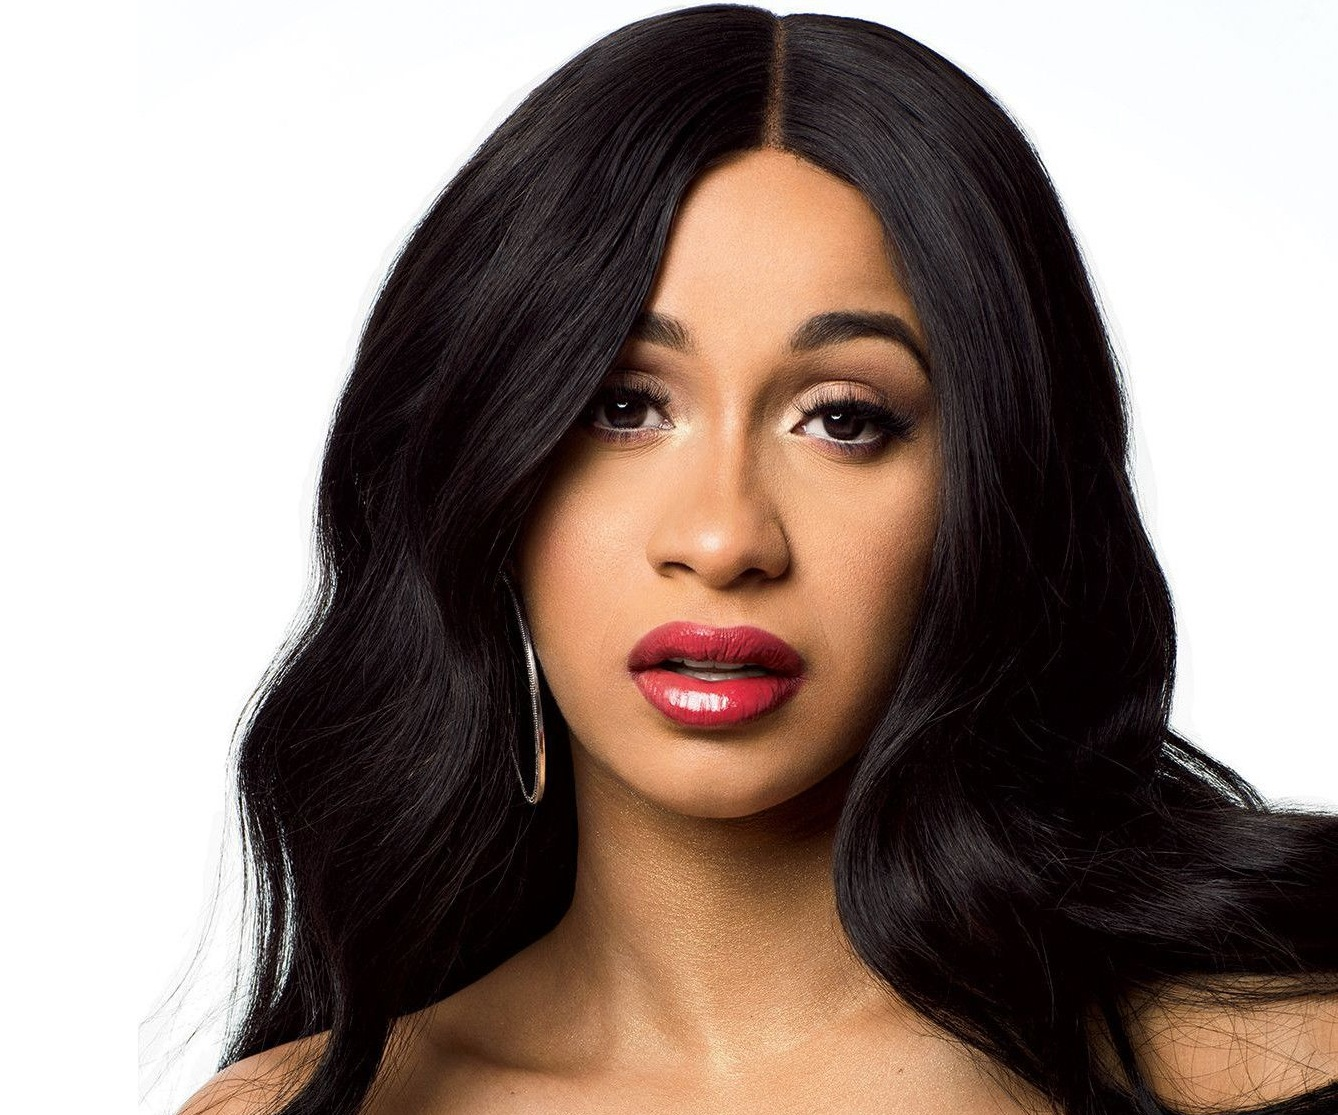 Cardi B S 8 Tattoos Their Meanings: Cardi B's 8 Tattoos & Their Meanings